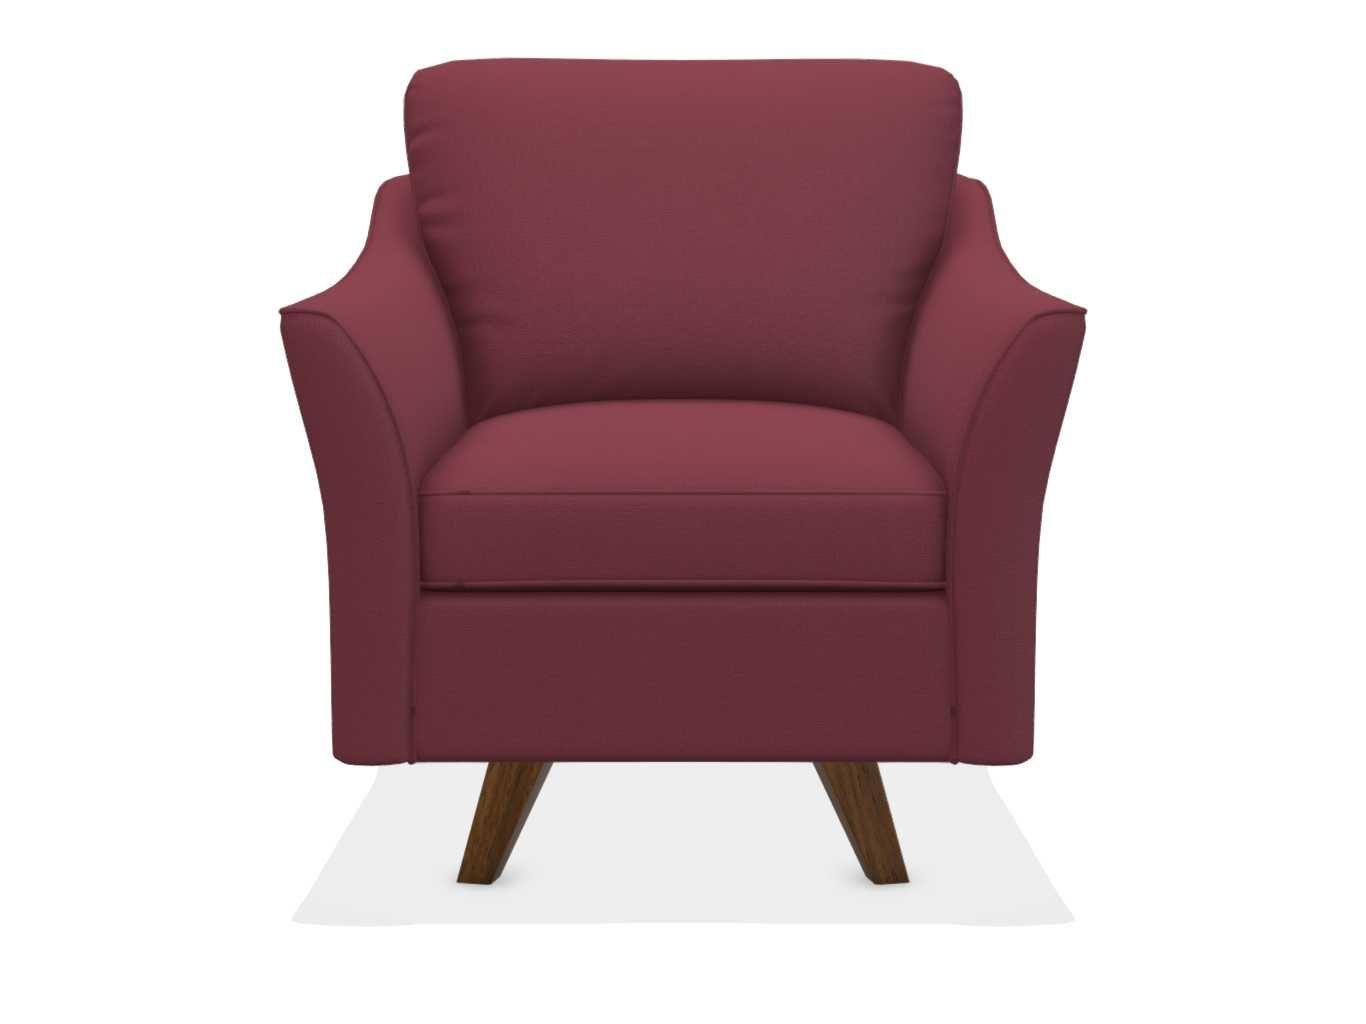 Reegan High Leg Swivel Chair In 2020 | Chair, Upholstery In Giguere Barrel Chairs (View 7 of 15)